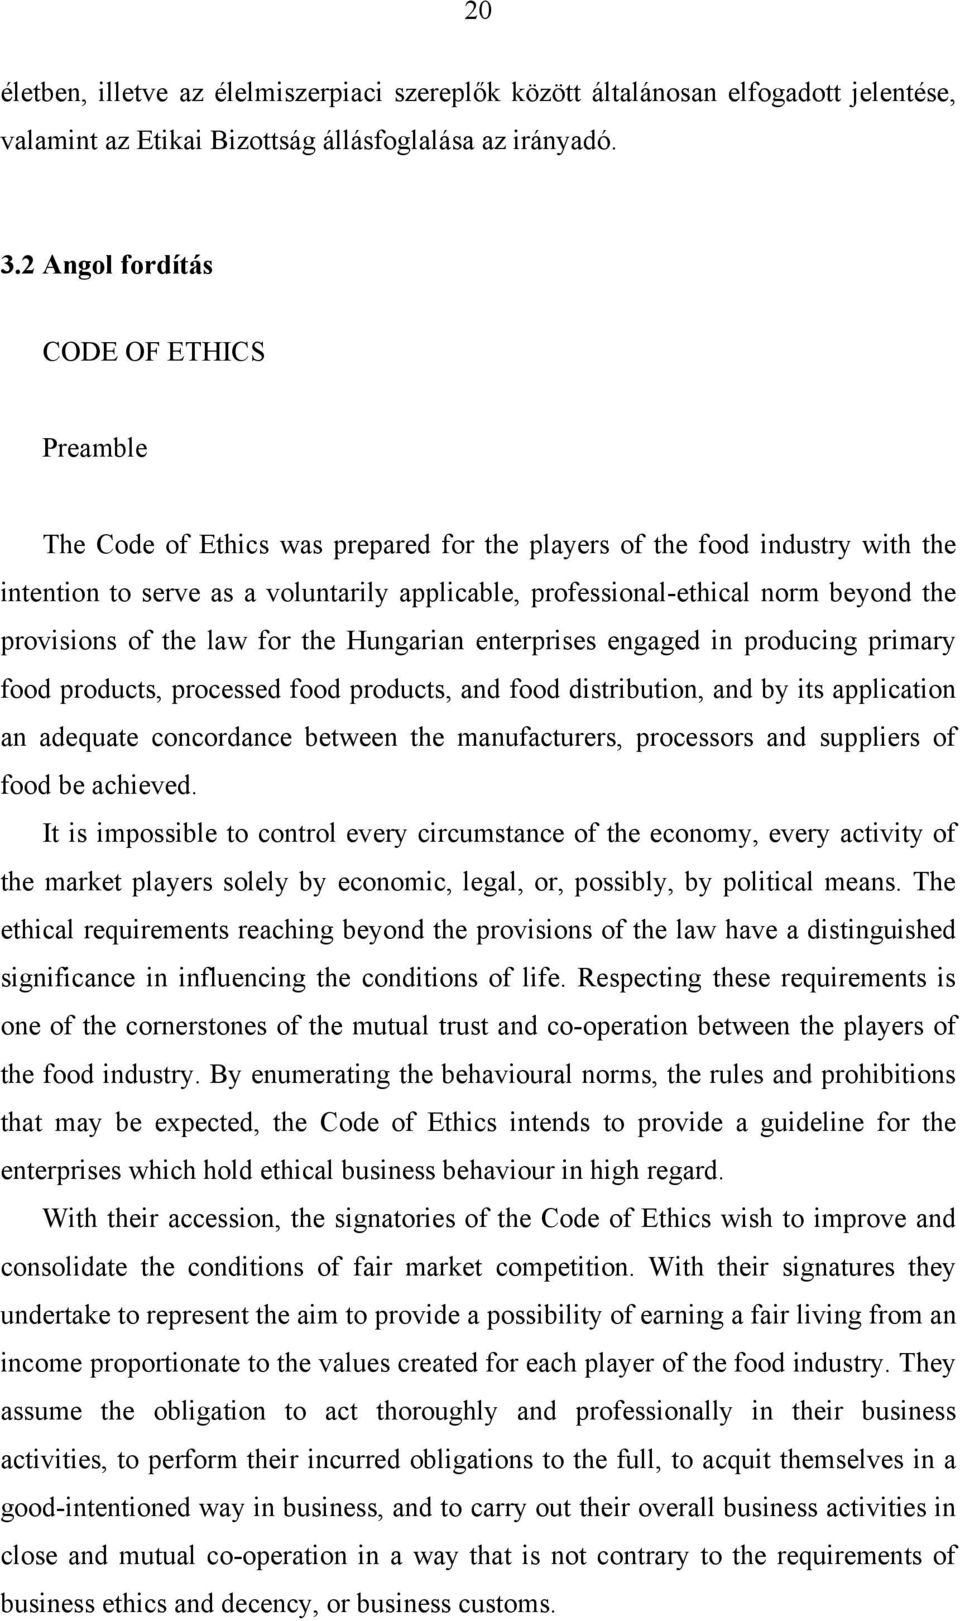 the provisions of the law for the Hungarian enterprises engaged in producing primary food products, processed food products, and food distribution, and by its application an adequate concordance